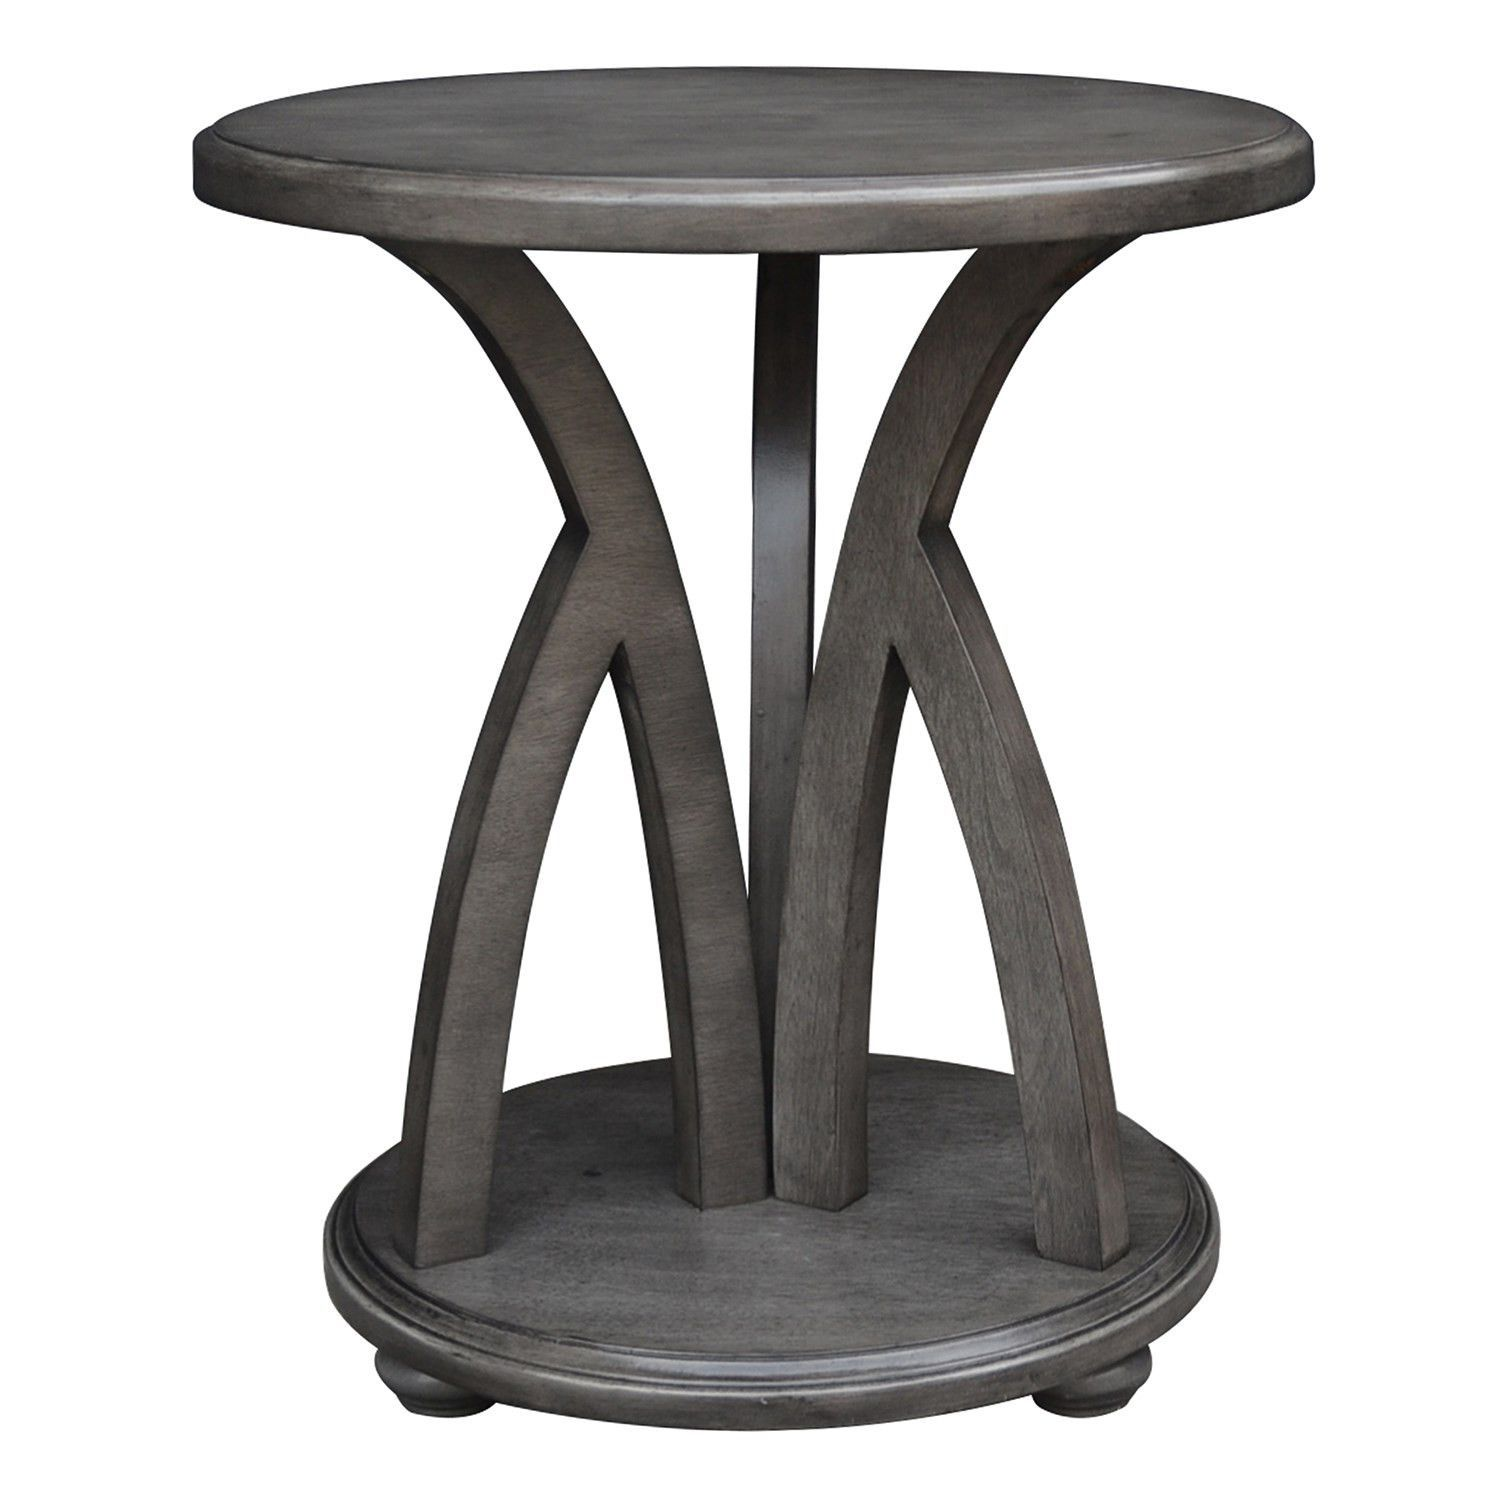 crestview brayden grey accent tables products round glass table end single wine rack covers square turquoise furniture small occasional side nickel lamp wood metal coffee set